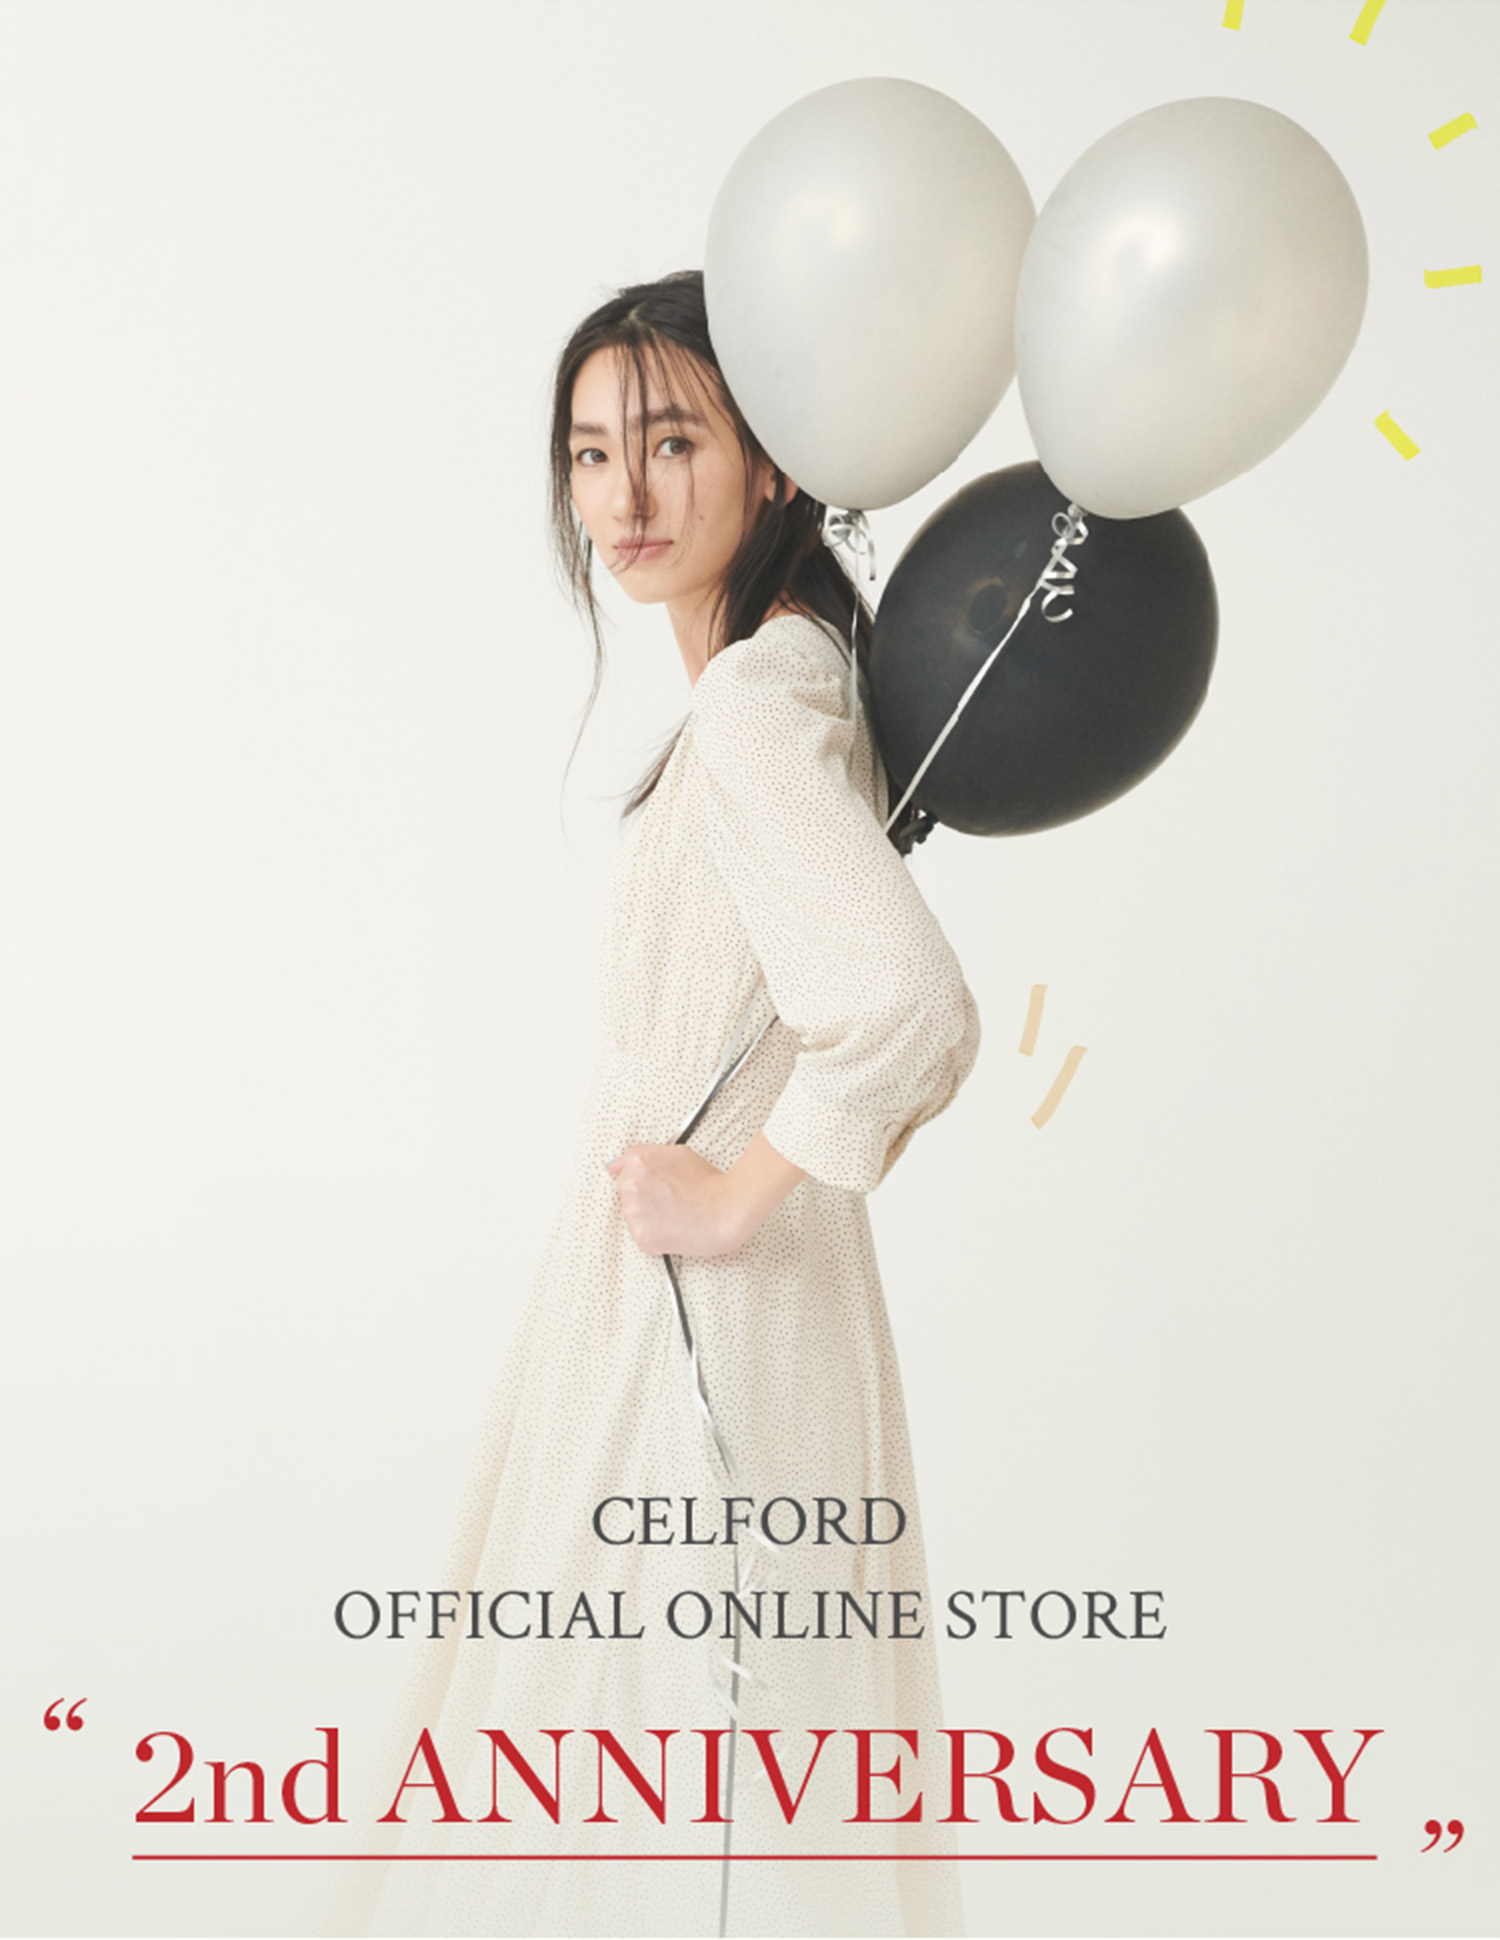 CELFORD OFFICIAL ONILEN STORE 2nd ANNIVERSARY